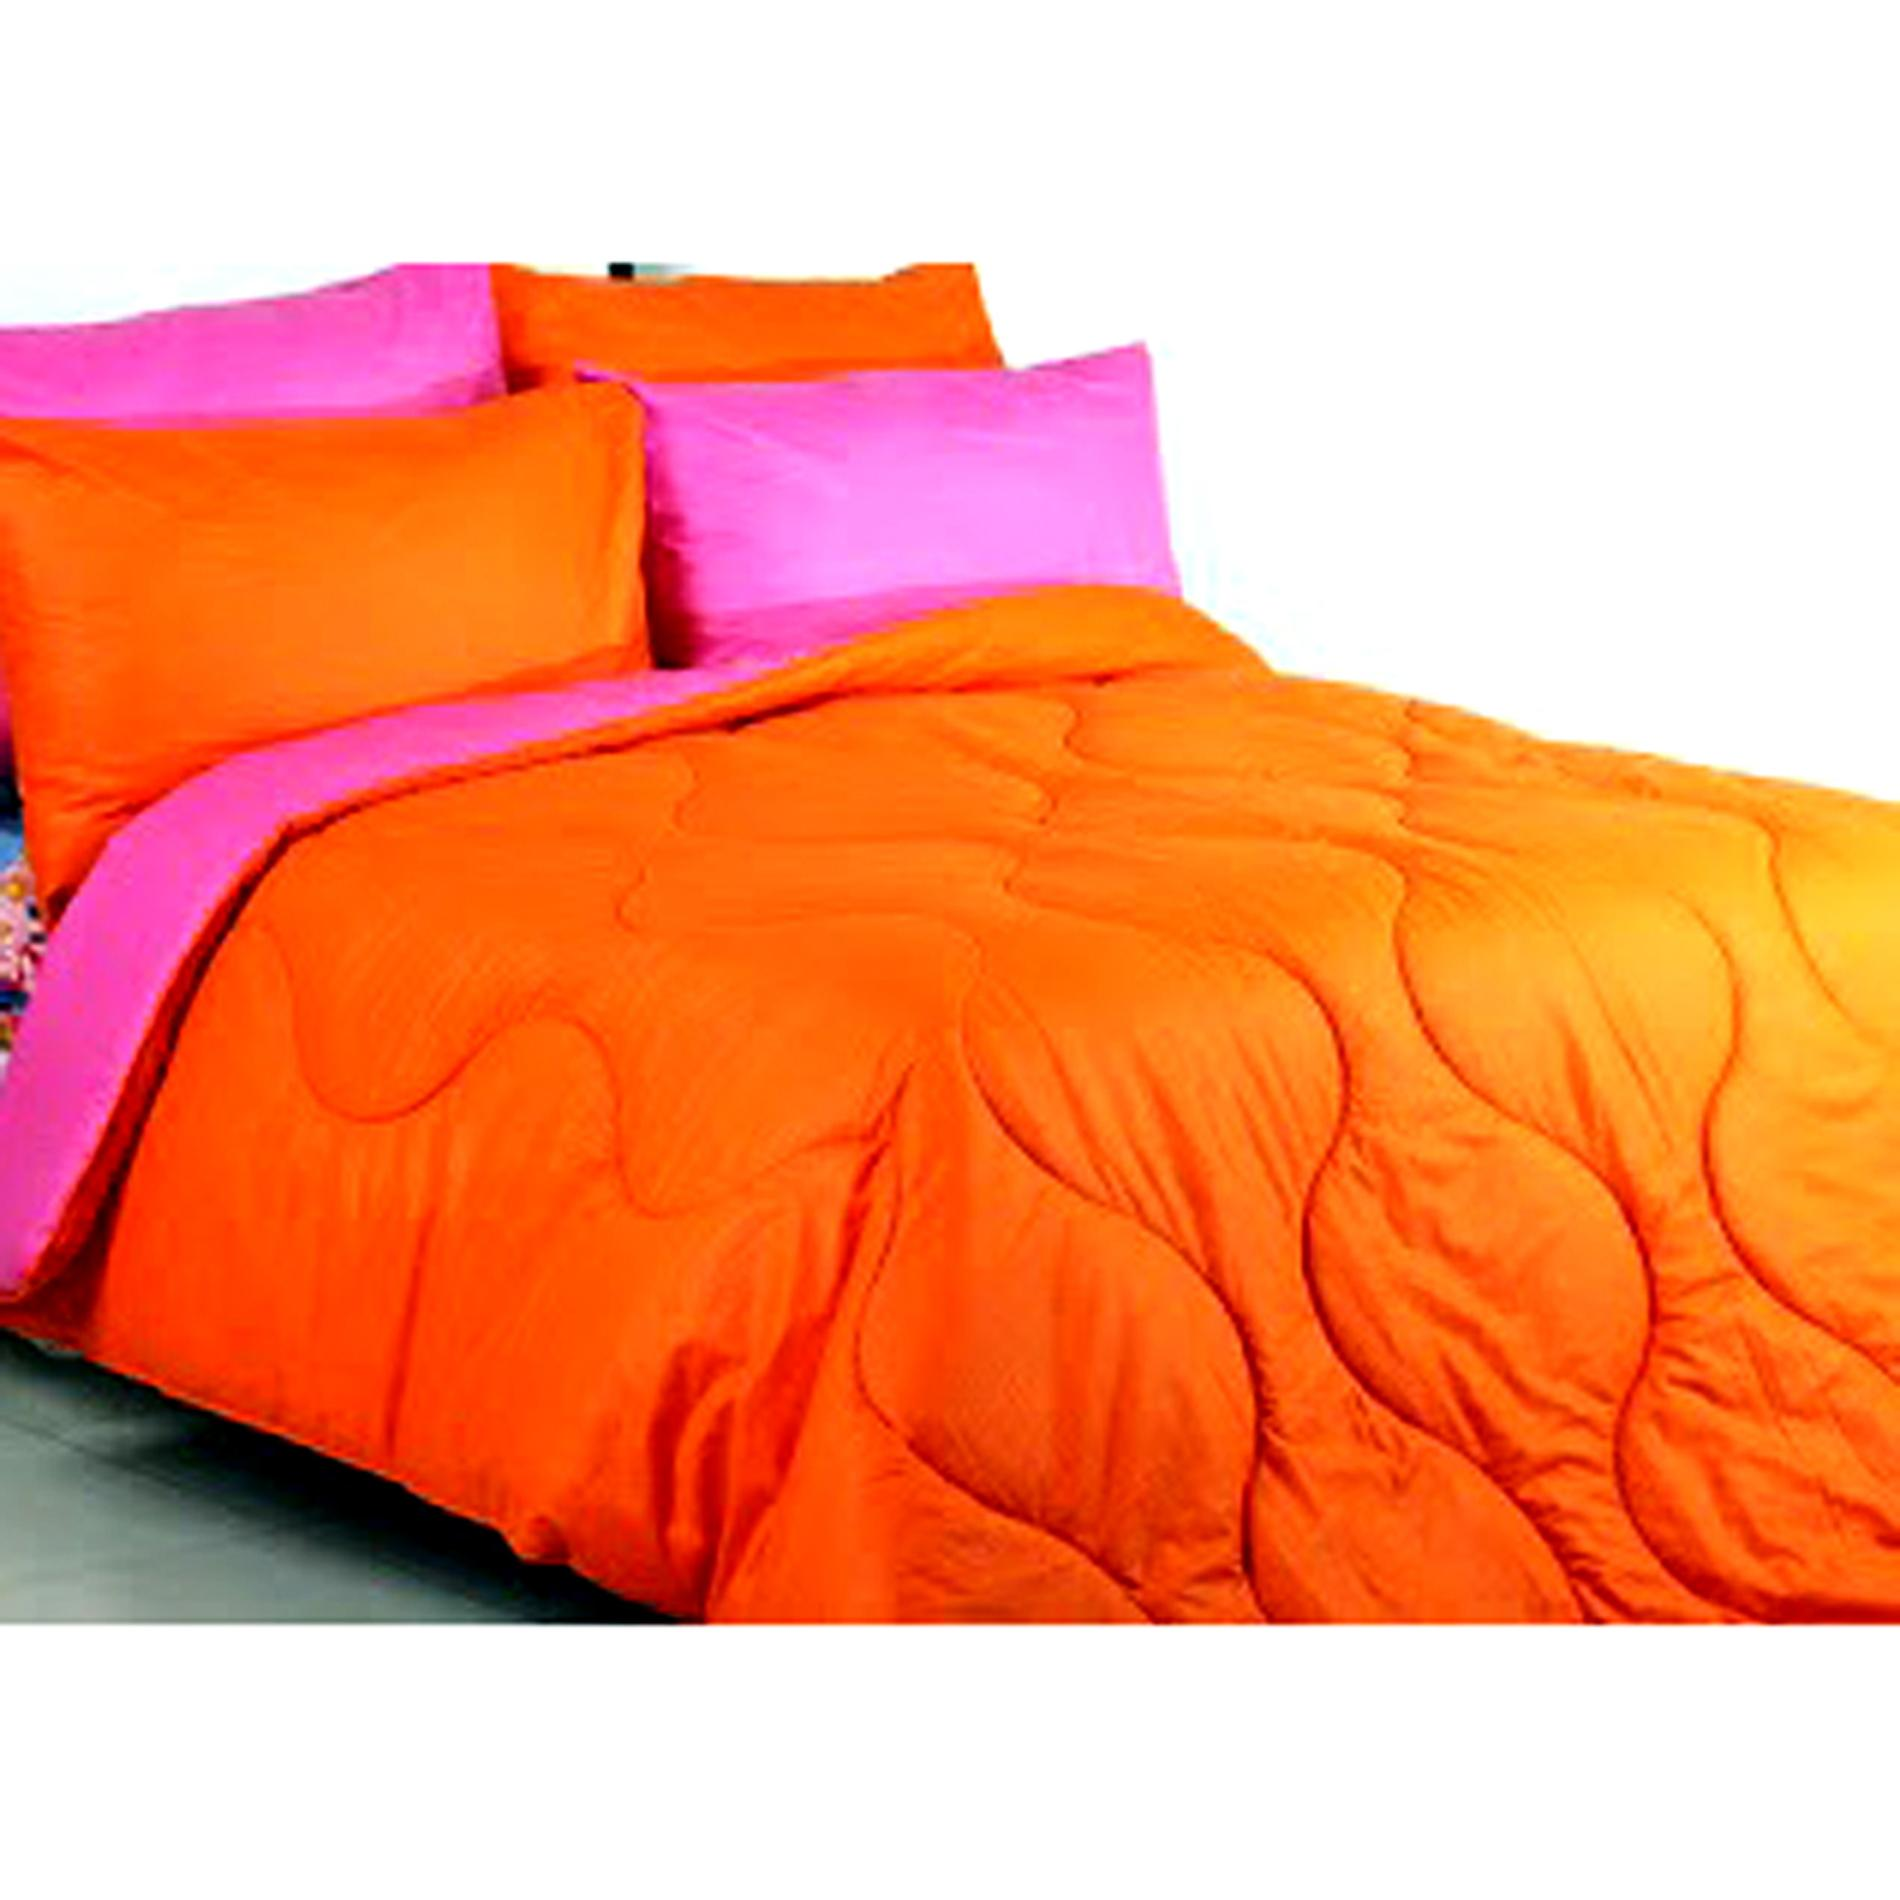 Ellenov Orange Pink Sprei With Bed Cover Katun